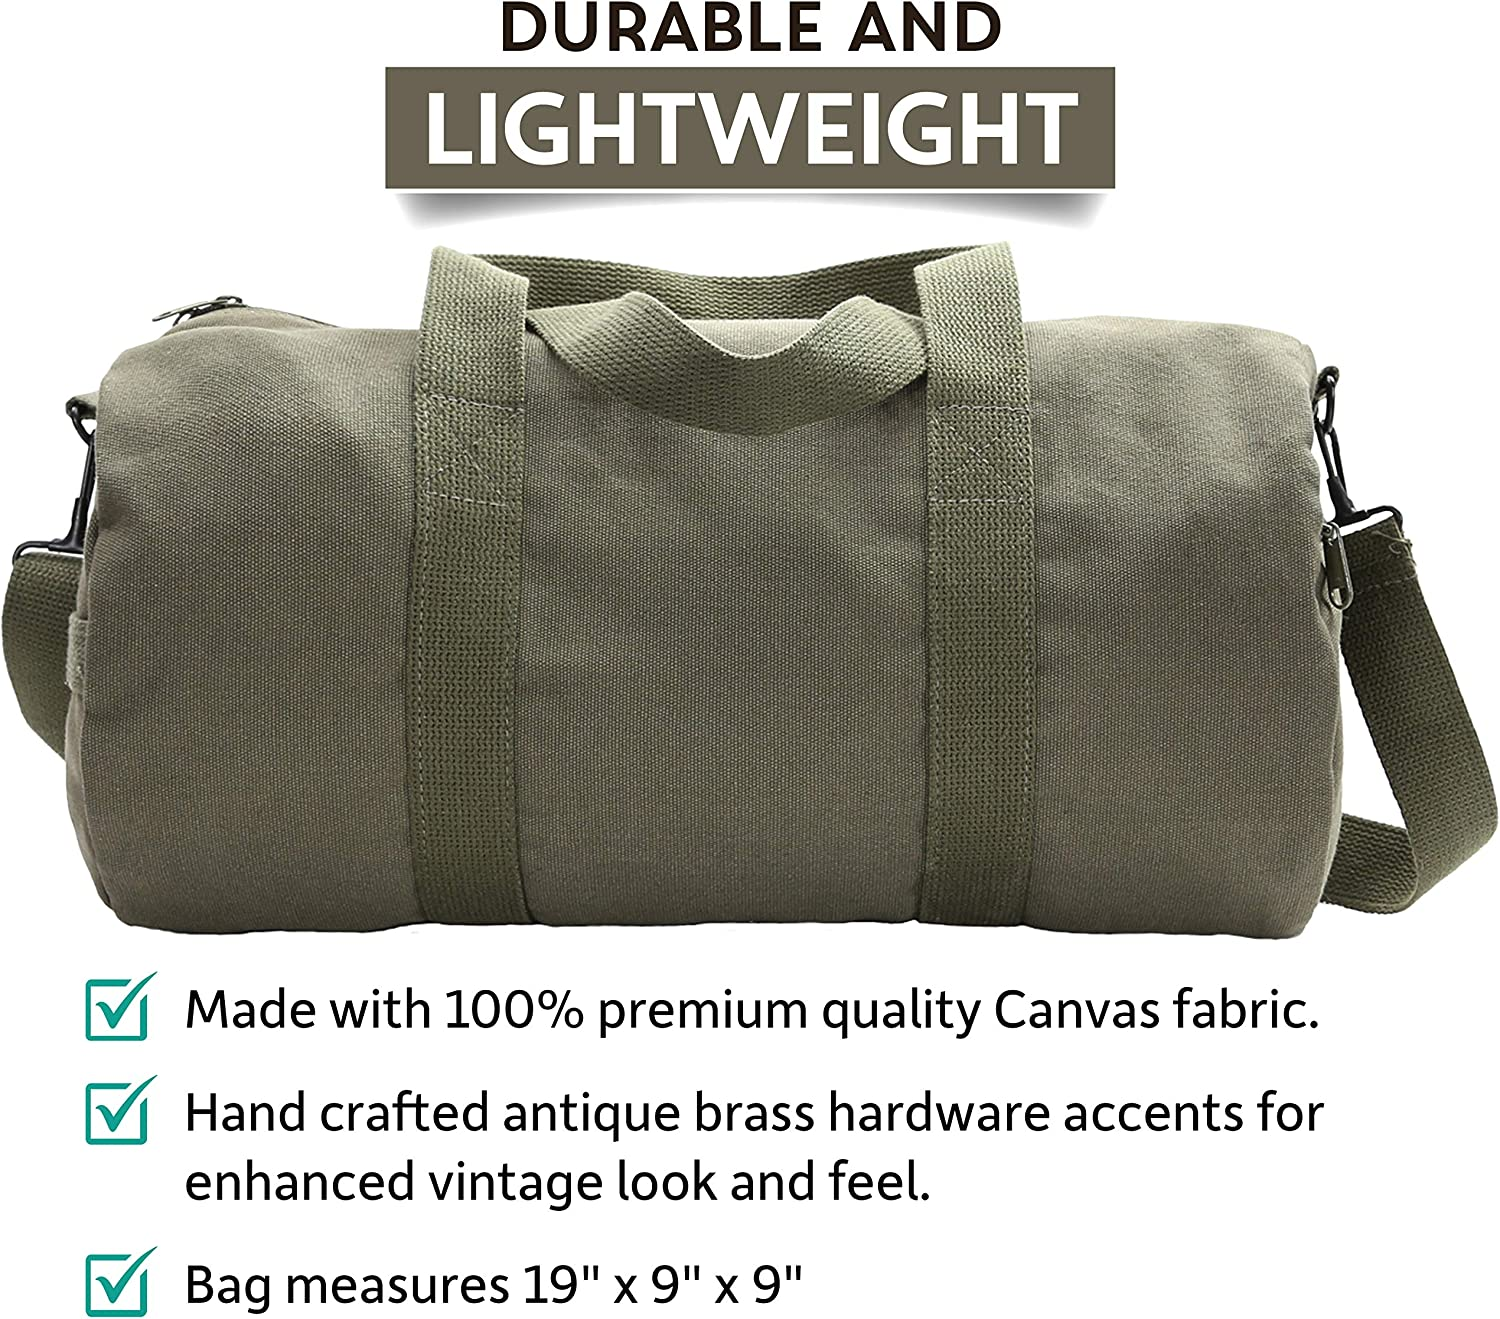 Large AK47 Army Sport Heavyweight Canvas Duffel Bag in Olive /& Black